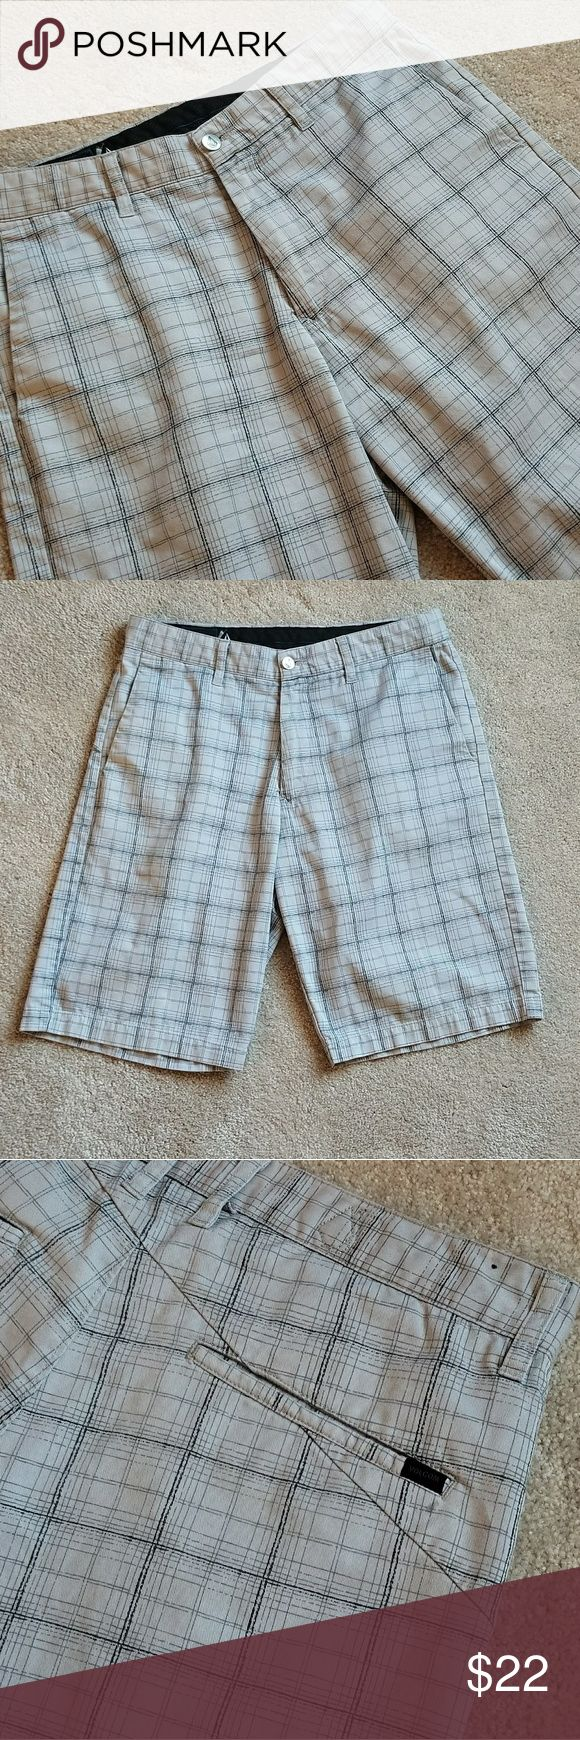 Men's Volcom Shorts Great condition! One small tear, but hardly noticeable at all! Last pic shows it! Volcom Shorts